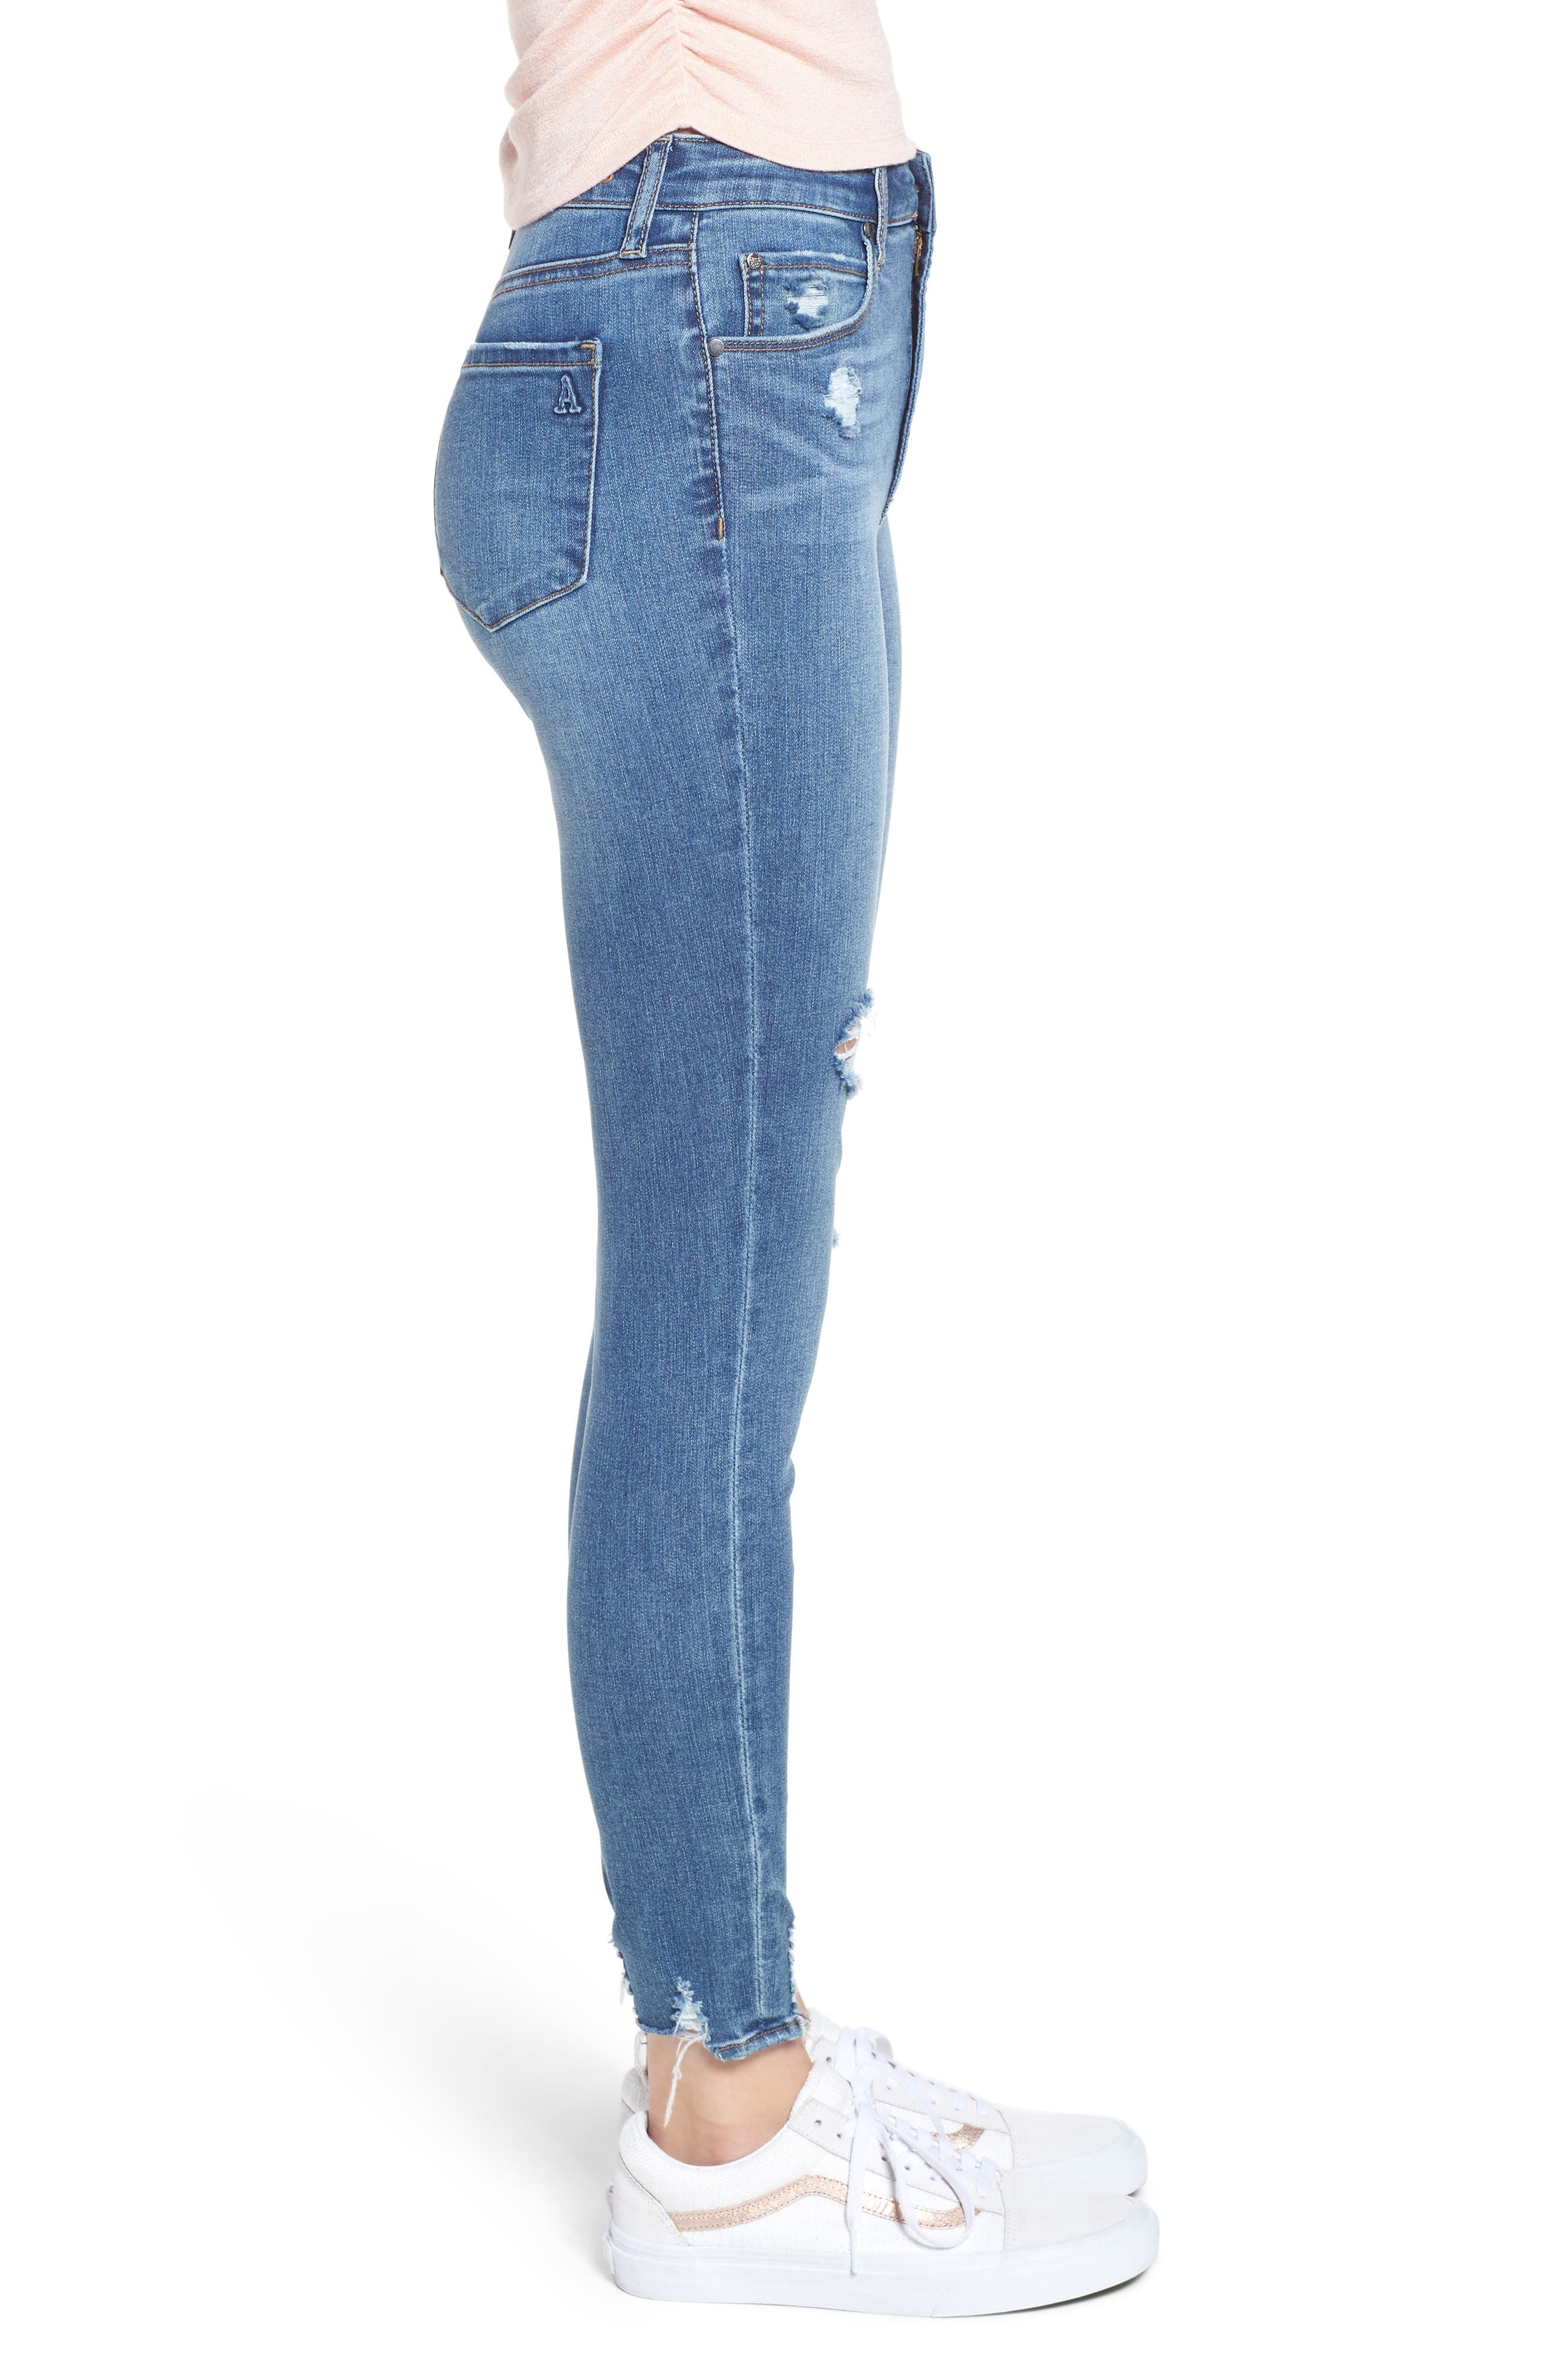 Heather High Waist Distressed Skinny Jeans,                             Alternate thumbnail 3, color,                             453